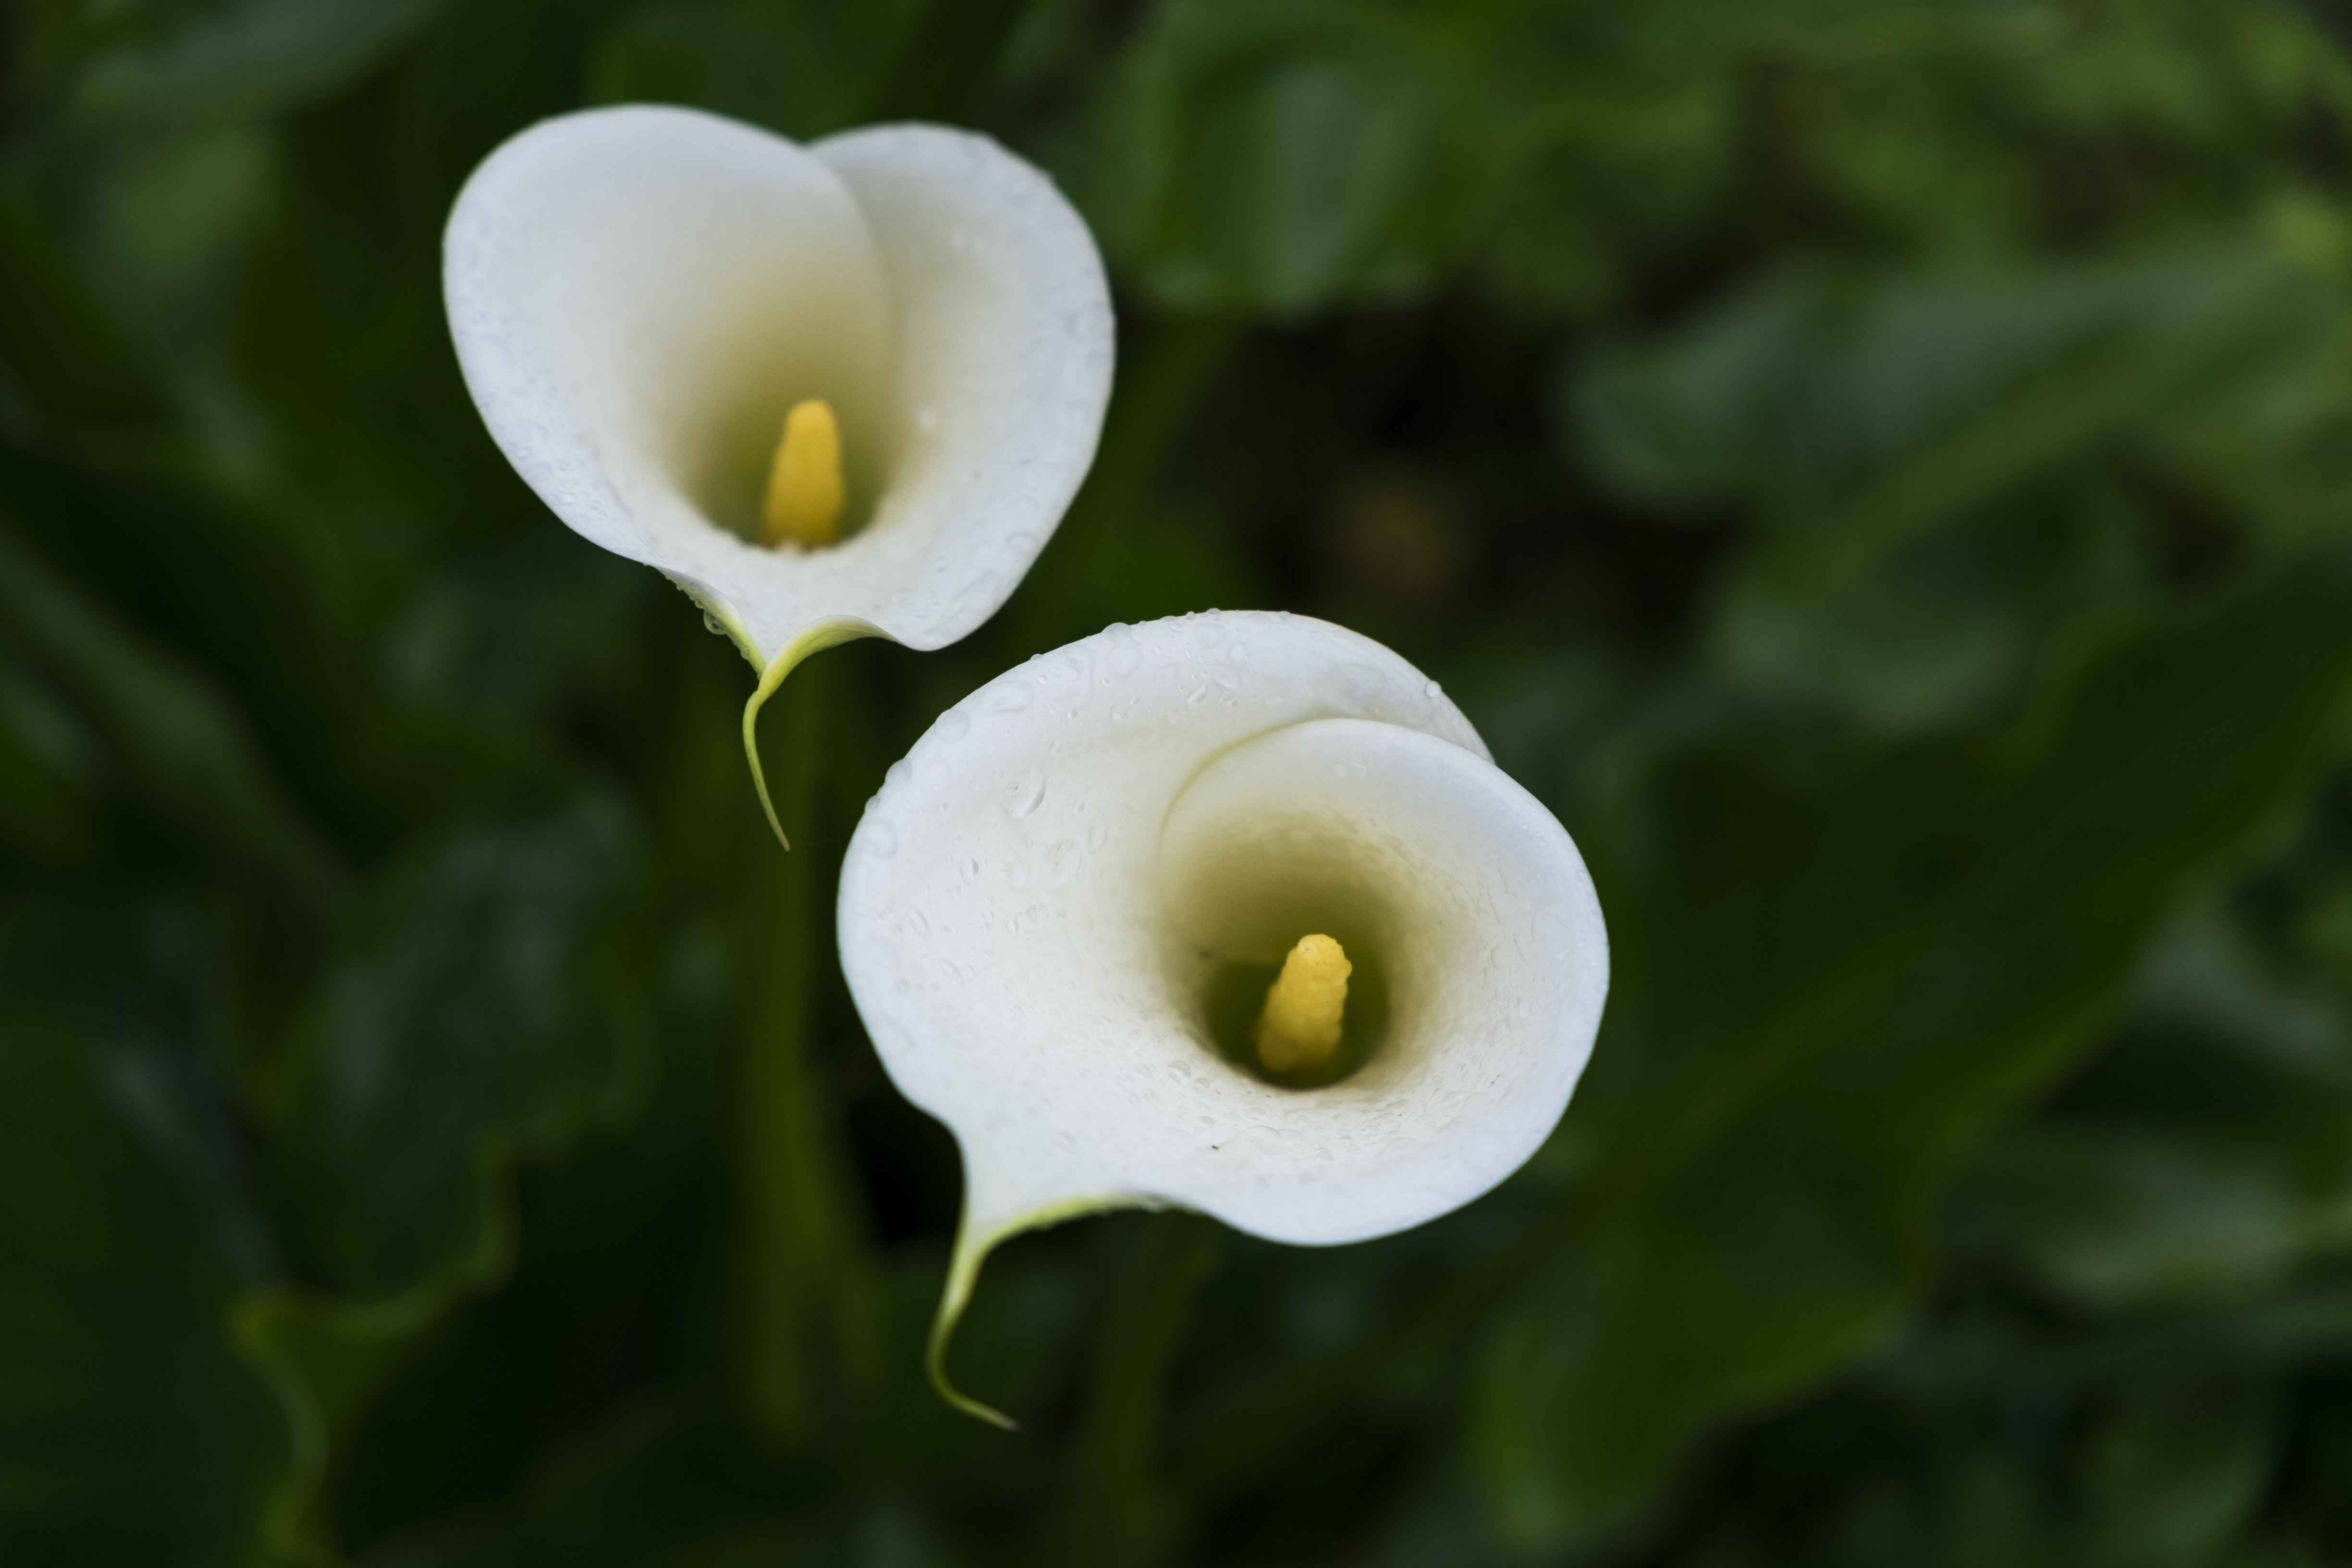 selective focus photography of white calla lily flowers